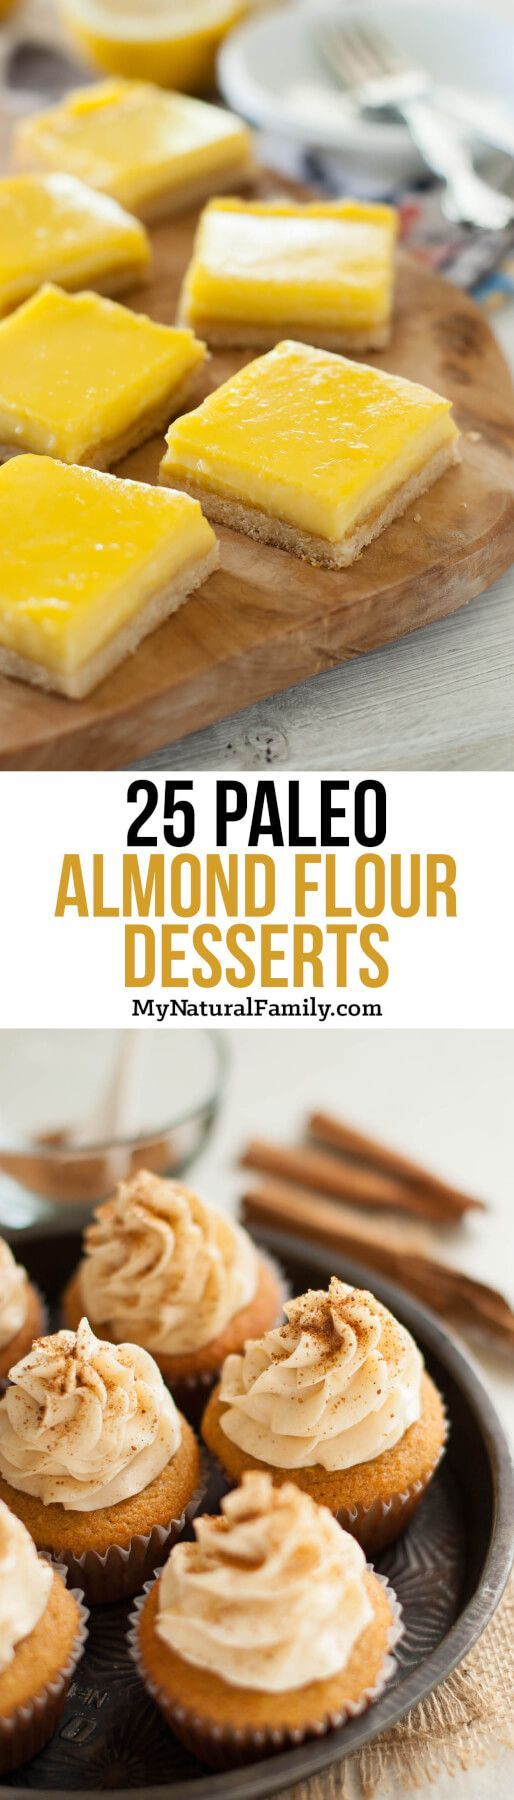 Paleo Almond Flour Dessert Recipes